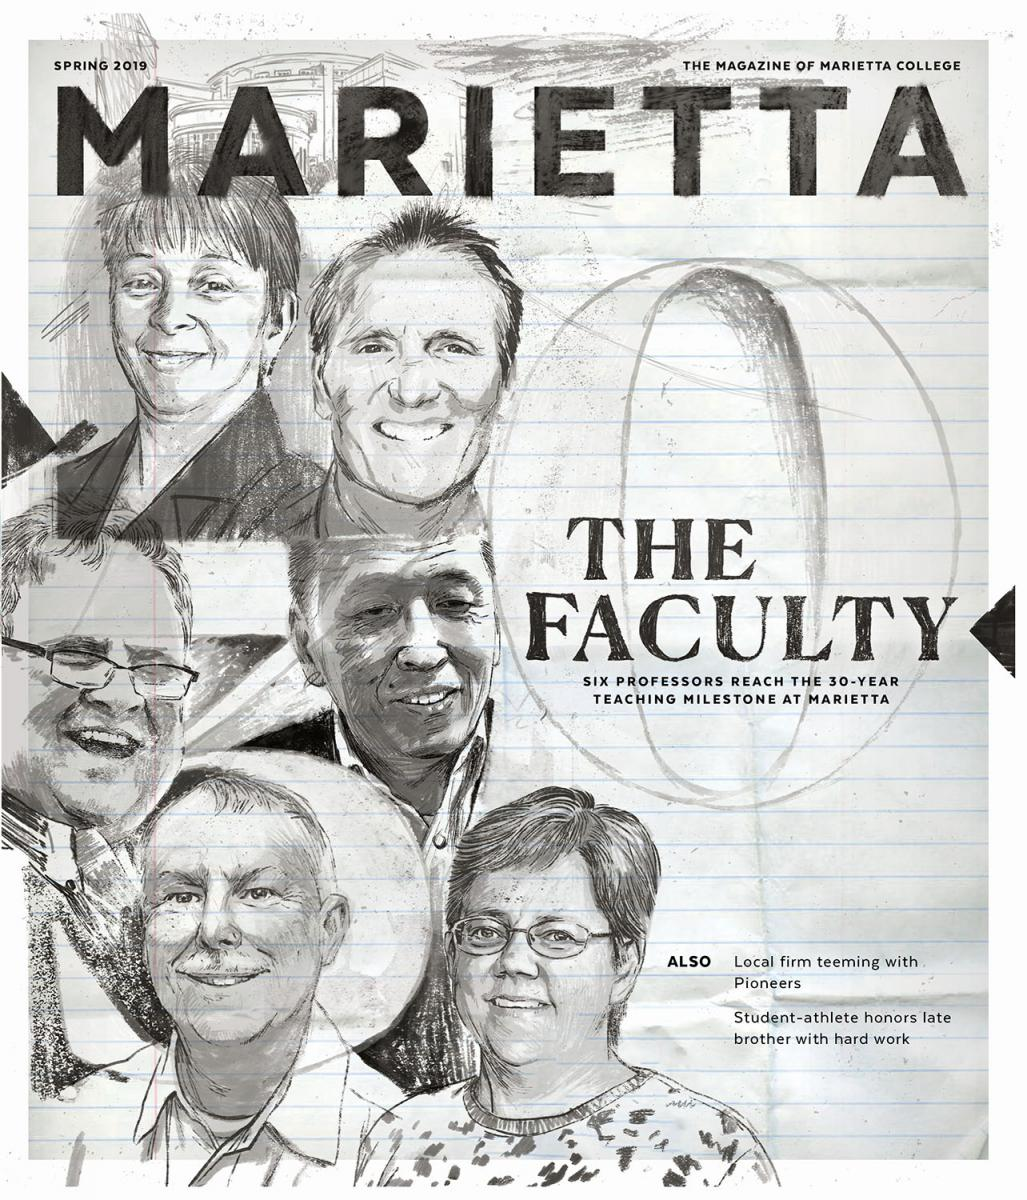 Spring 2019 Cover of the Marietta Magazine